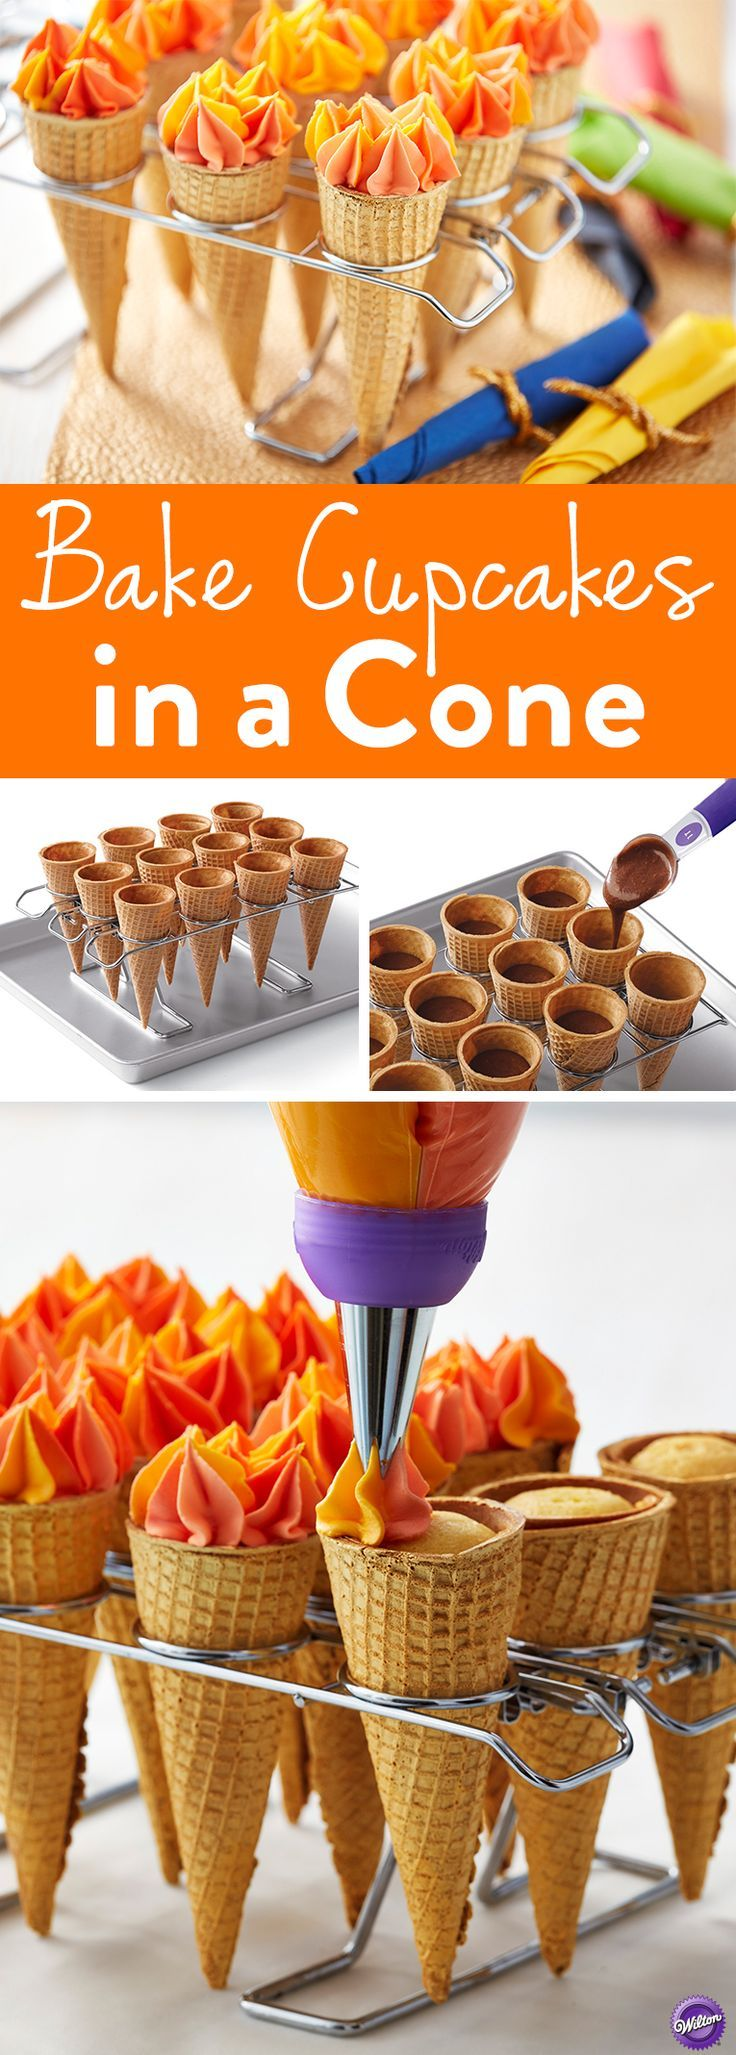 How to Bake Cupcakes in a Cone - Easily bake, decorate and serve cupcakes in sugar or cake ice cream cones using the Wilton Cupcake Cone Baking Rack. It's the fun way to serve and eat cupcakes. Bake them in your favorite ice cream cones using this convenient oven-safe rack. Holds batter-filled cones steady in the oven to bake a treat that's easy to hold and fun to decorate.